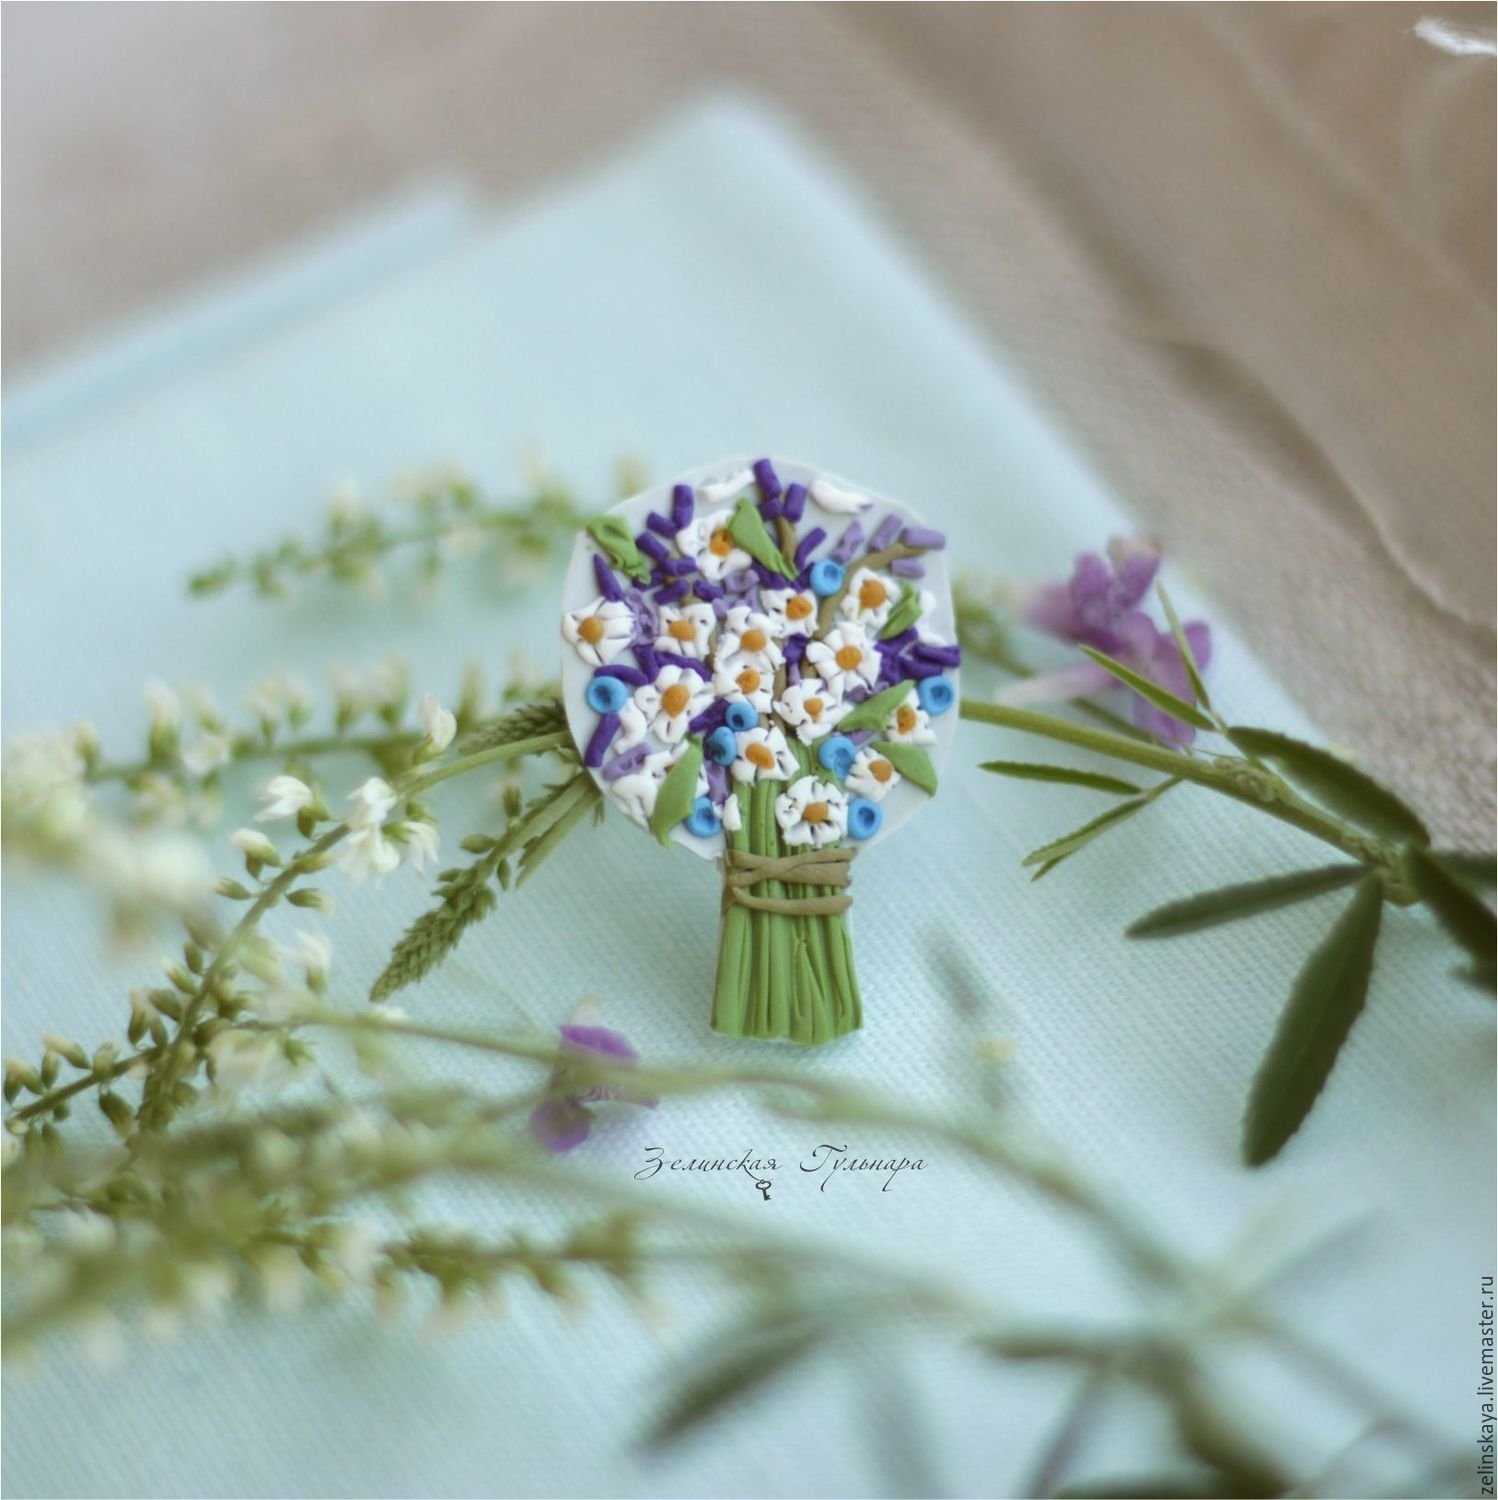 Clay miniature bouquet brooch polymer clay miniature bouquet brooch izmirmasajfo Images